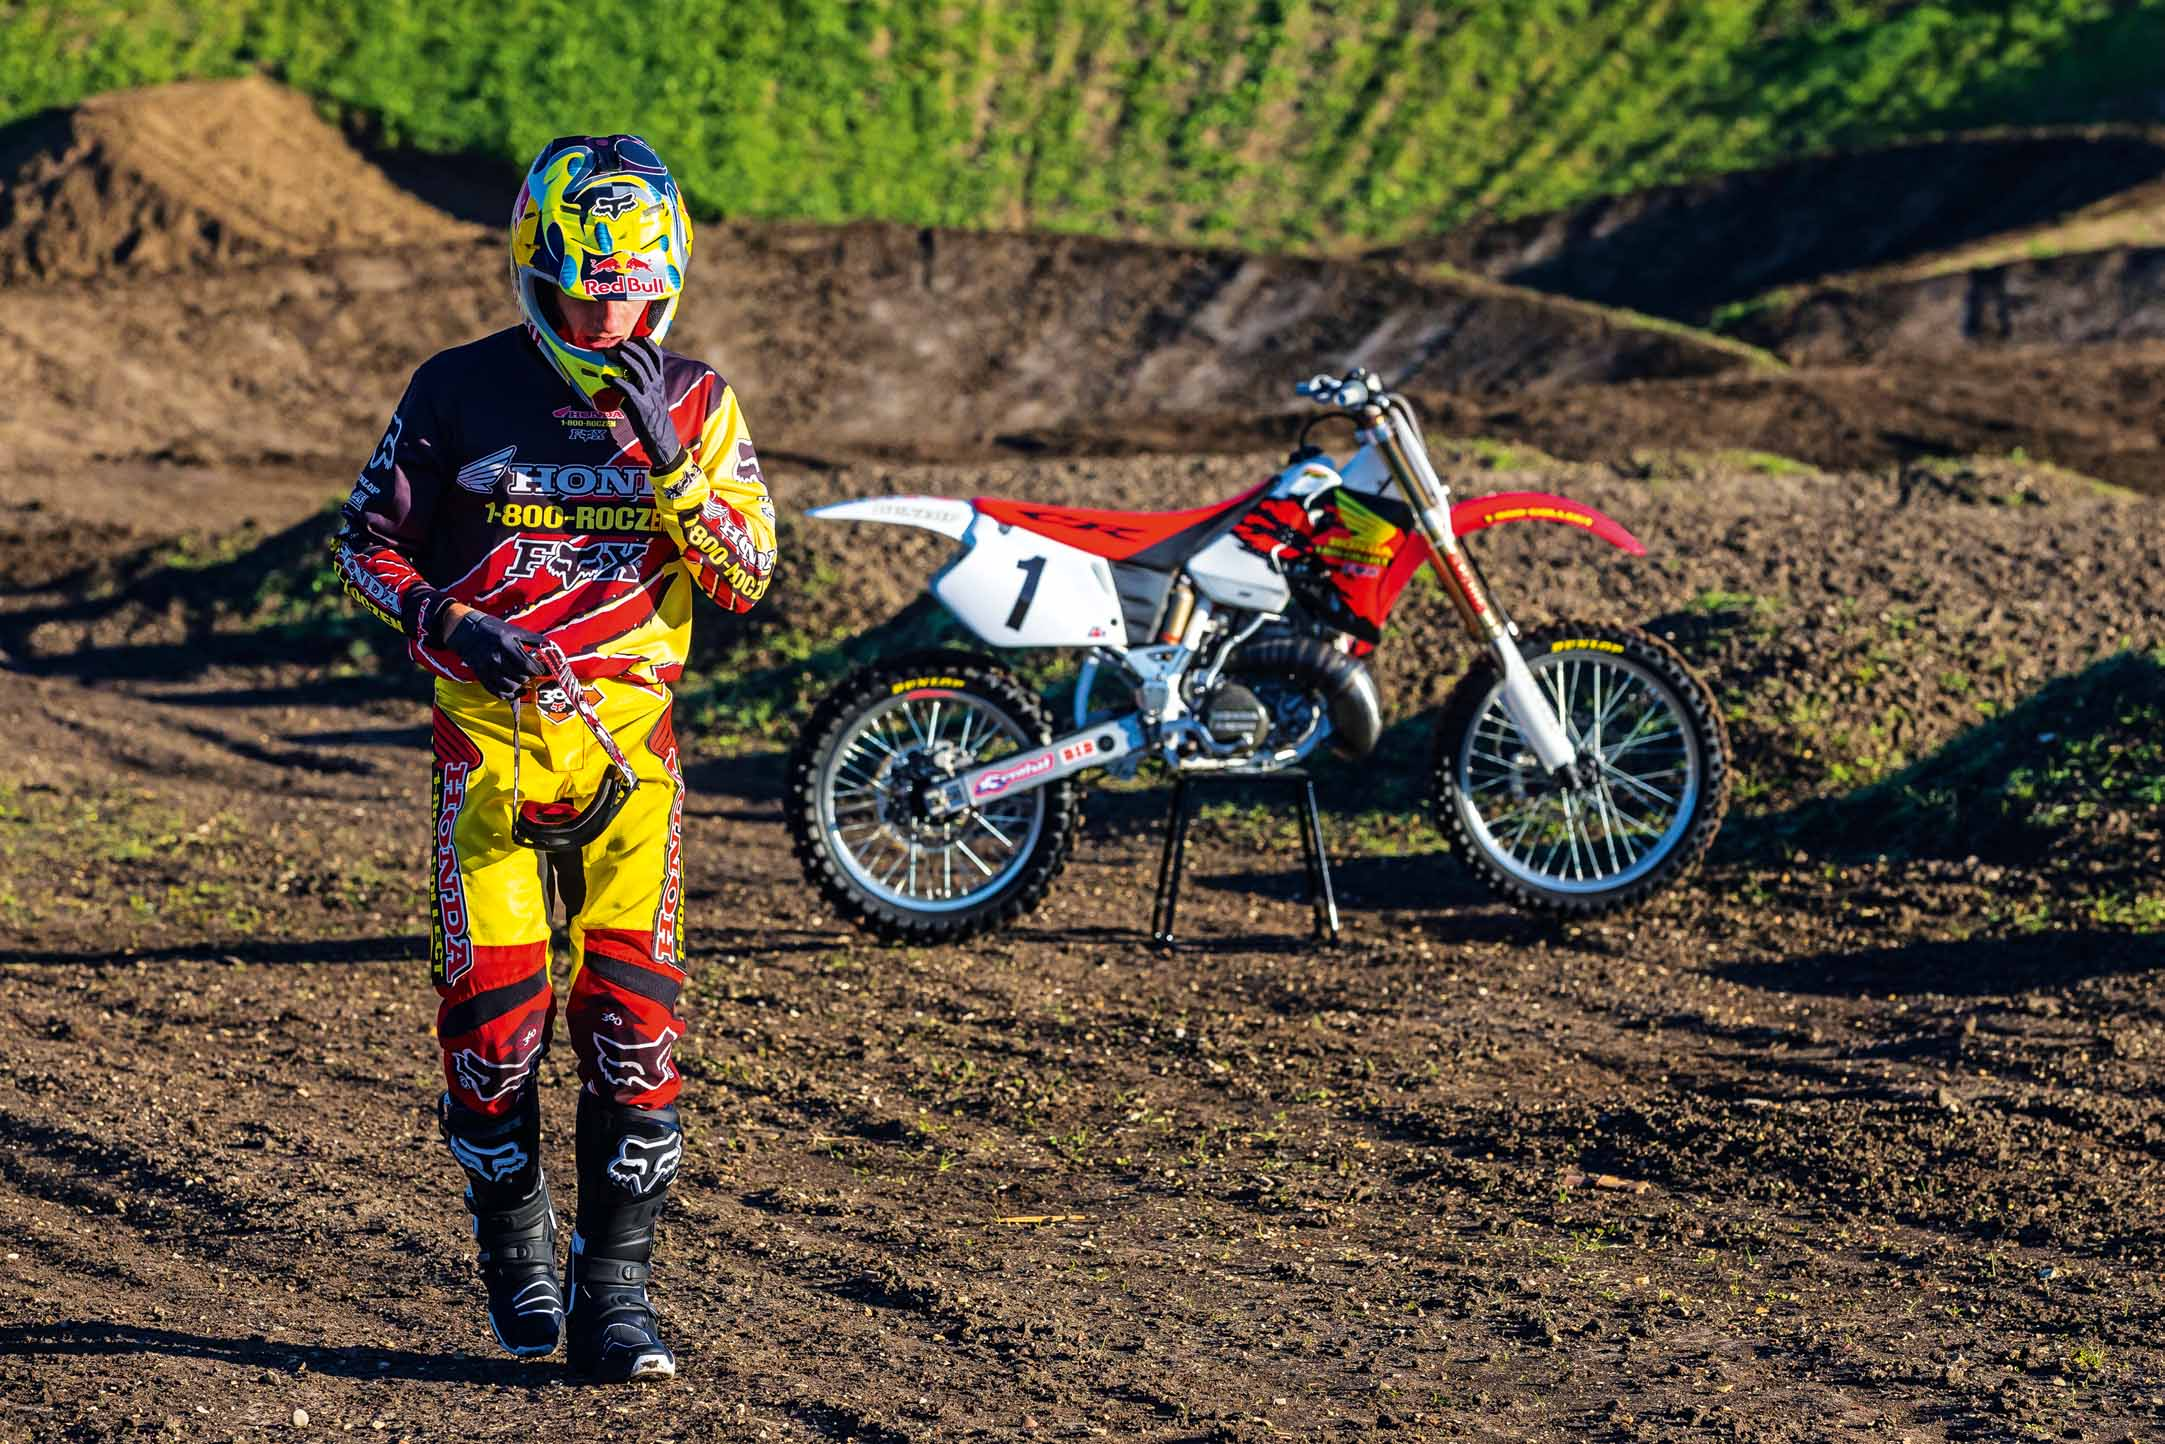 Ken Roczen prepares to ride Jeremy McGrath's 1996 Honda CR250R while recreating segments from the original Terra Firma 2 motocross video at Castillo Ranch in Los Alamos, California, USA on 28 December 2016. // Garth Milan/Red Bull Content Pool // P-20170109-01422 // Usage for editorial use only // Please go to www.redbullcontentpool.com for further information. //